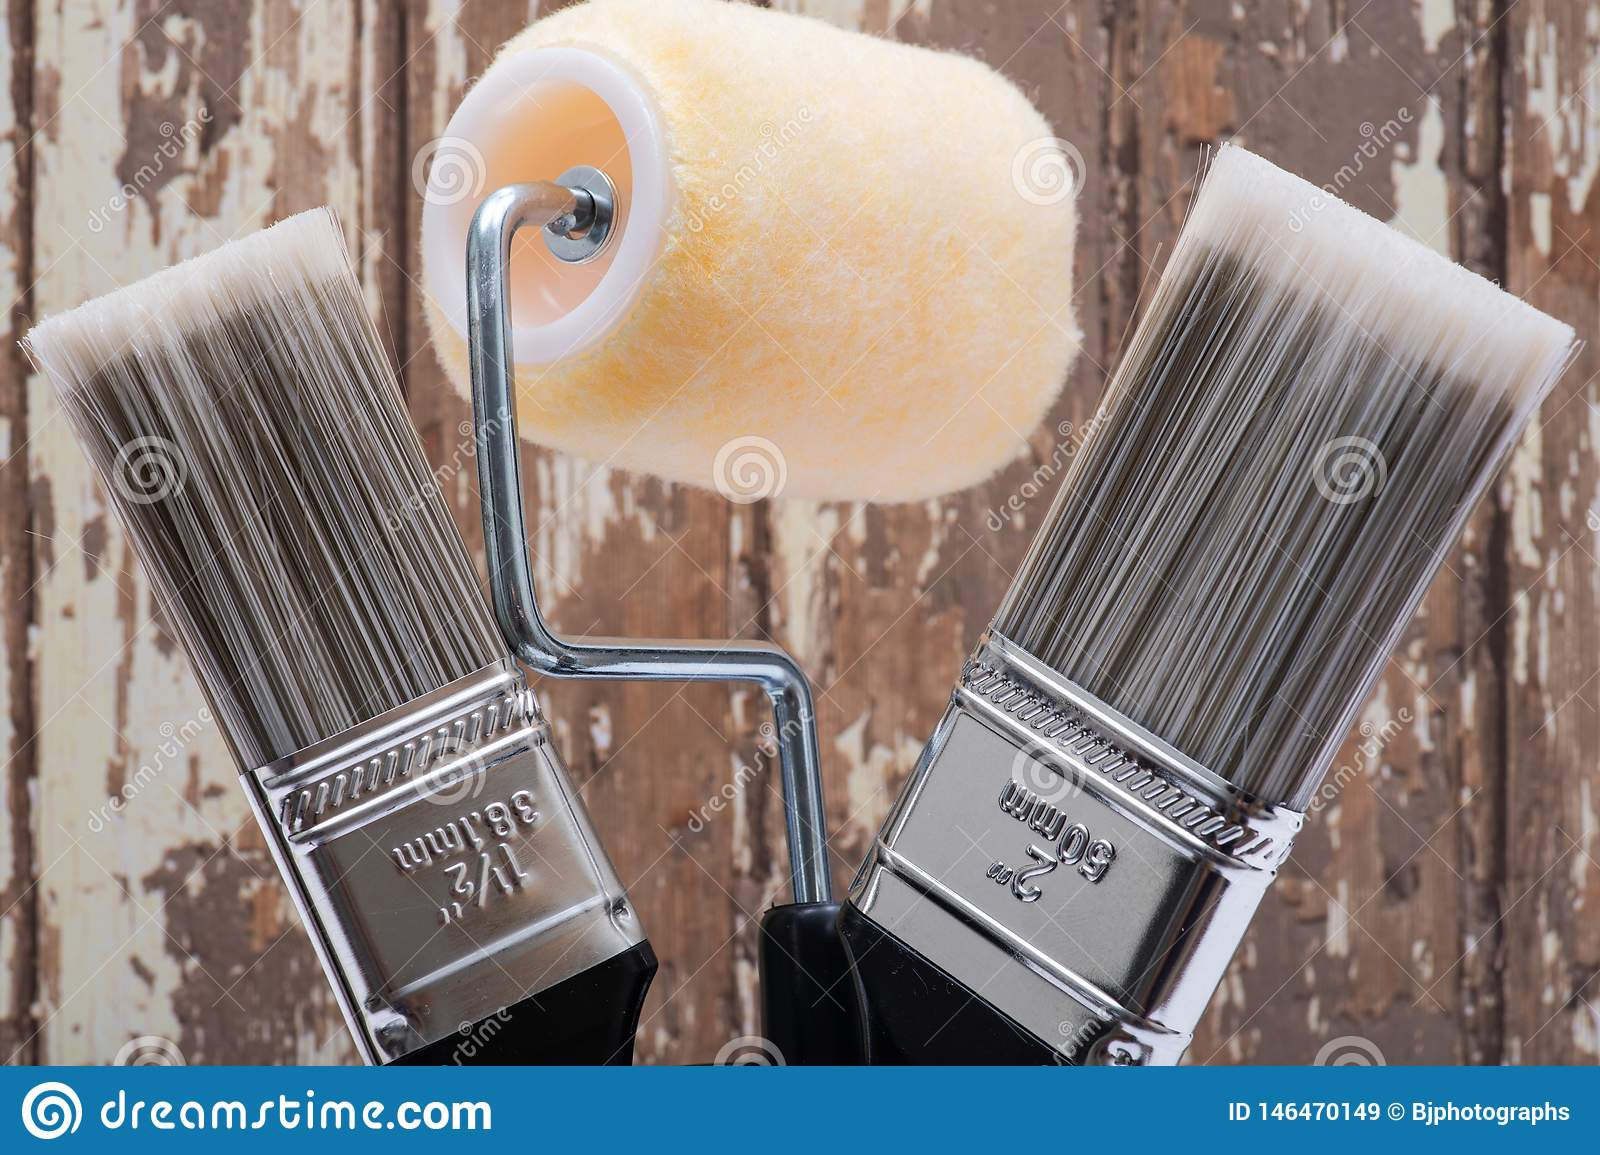 Flat Cut Utility Paint Brushes and High Density Knit Fabric Trim Roller with Frame  on wood